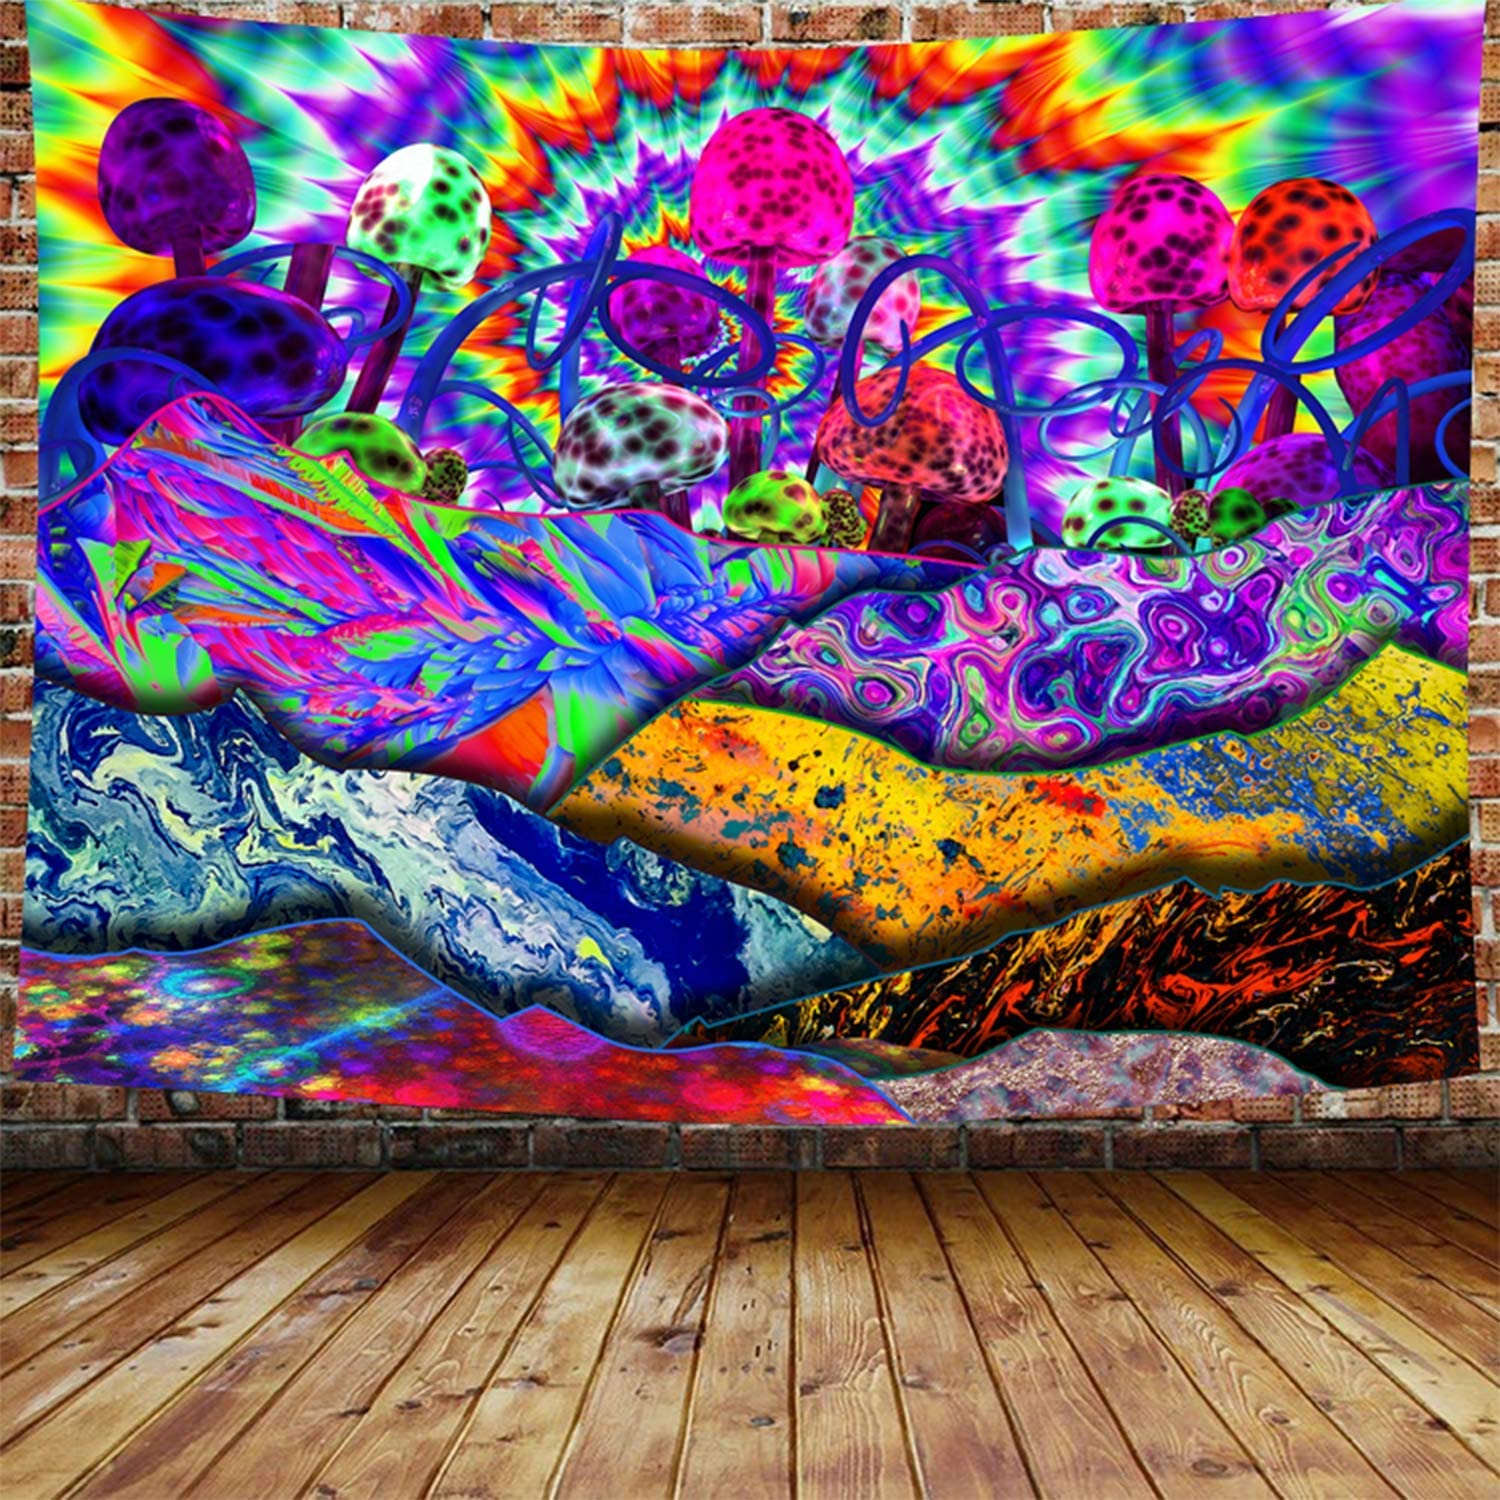 Trippy Tapestry Psychedelic Mountain - Magic Mushroom Wall Hanging Multiple Colorful Hippie Tapestries Art Window Treatments Valance Bedroom Decor Living Room Door Curtain Balcony Sheer Room Divider